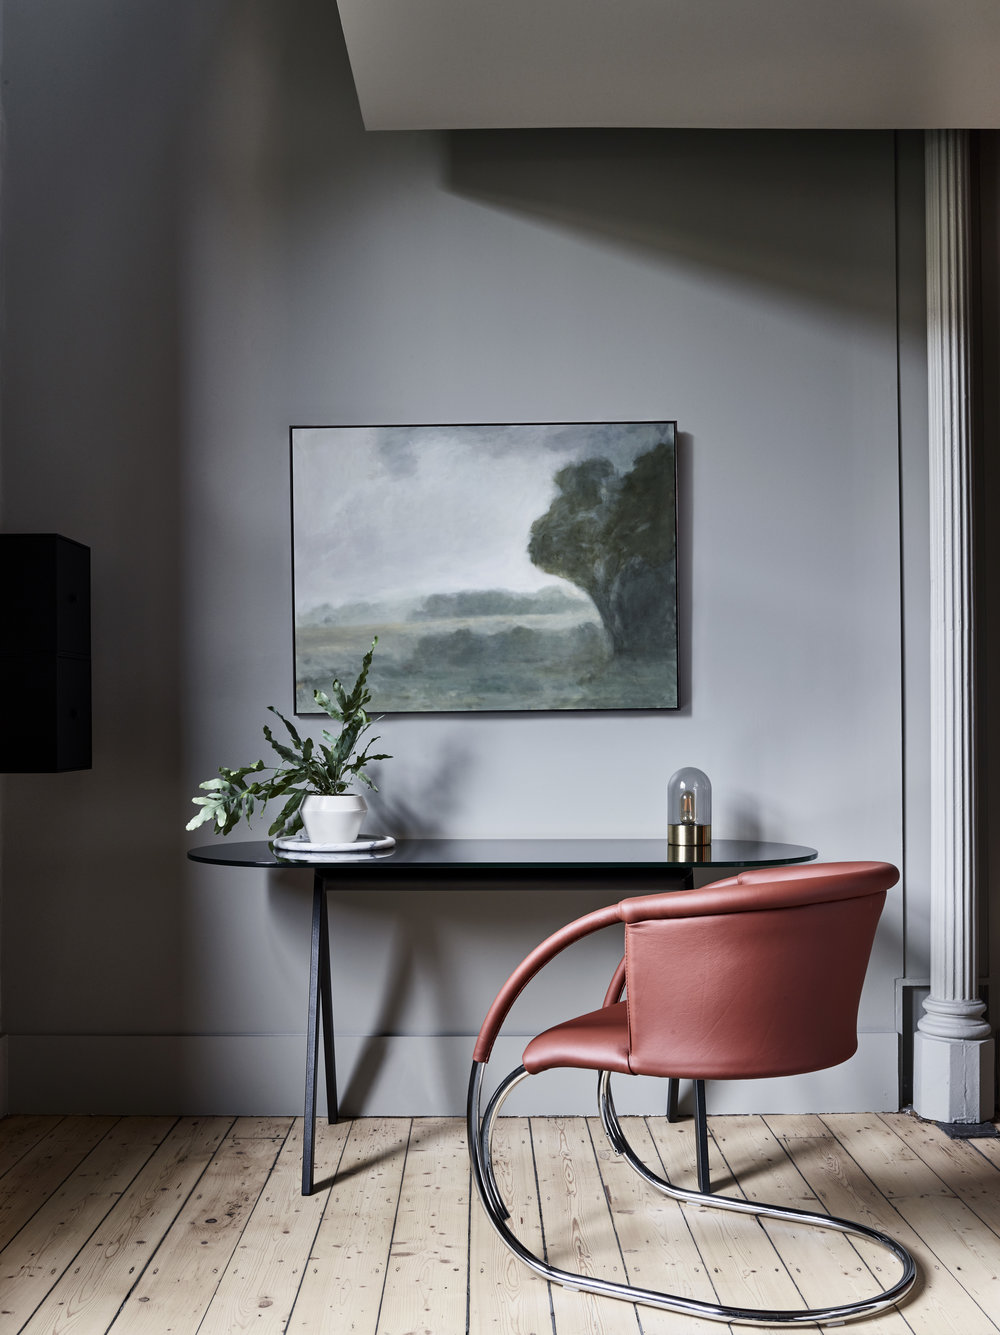 ML33 armchair designed in 1933 by Mogens Lassen. Manufactured by By Lassen, Copenhagen. Saw Desk with glass top by Friends & Founders, Denmark. Art by Greg Wood via James Makin Gallery. Photo – Mark Roper. Styling – Simone Haag.